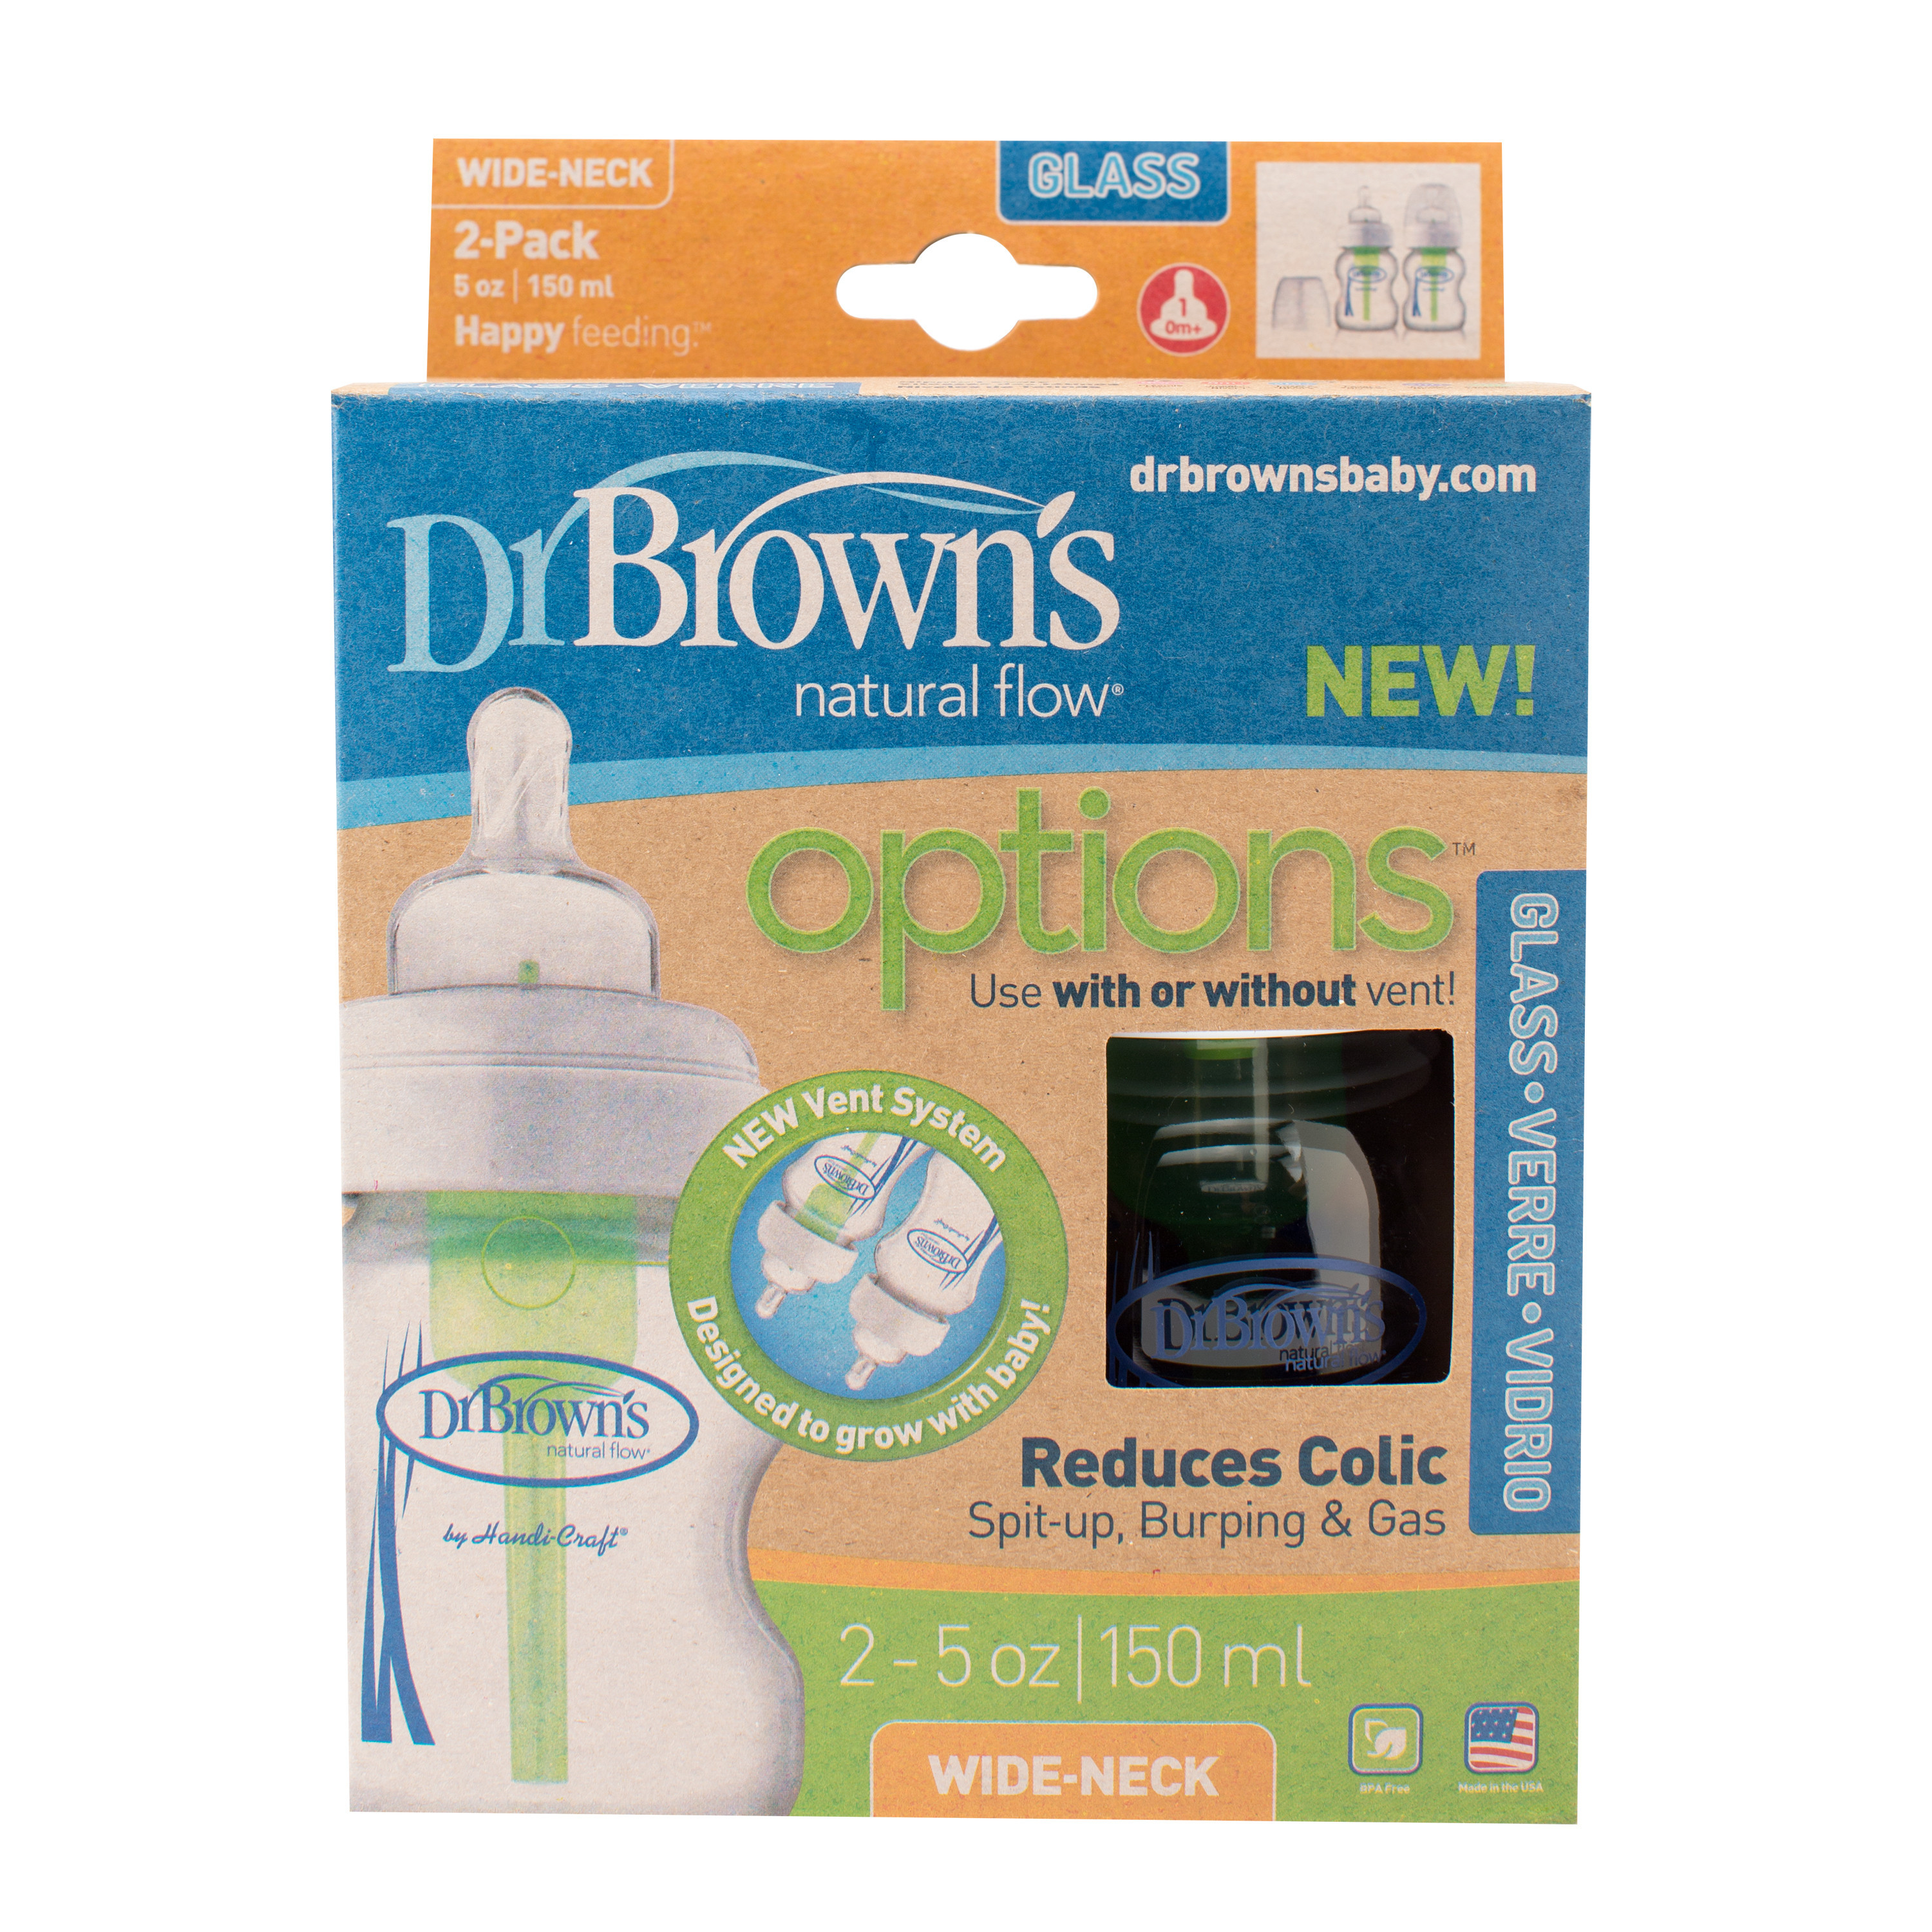 Dr Brown S Options Bottle Gift Set Blue Ideas Drbrowns Wide Neck Pp Baby Pink Wb933 Browns Gl 2pack 5oz